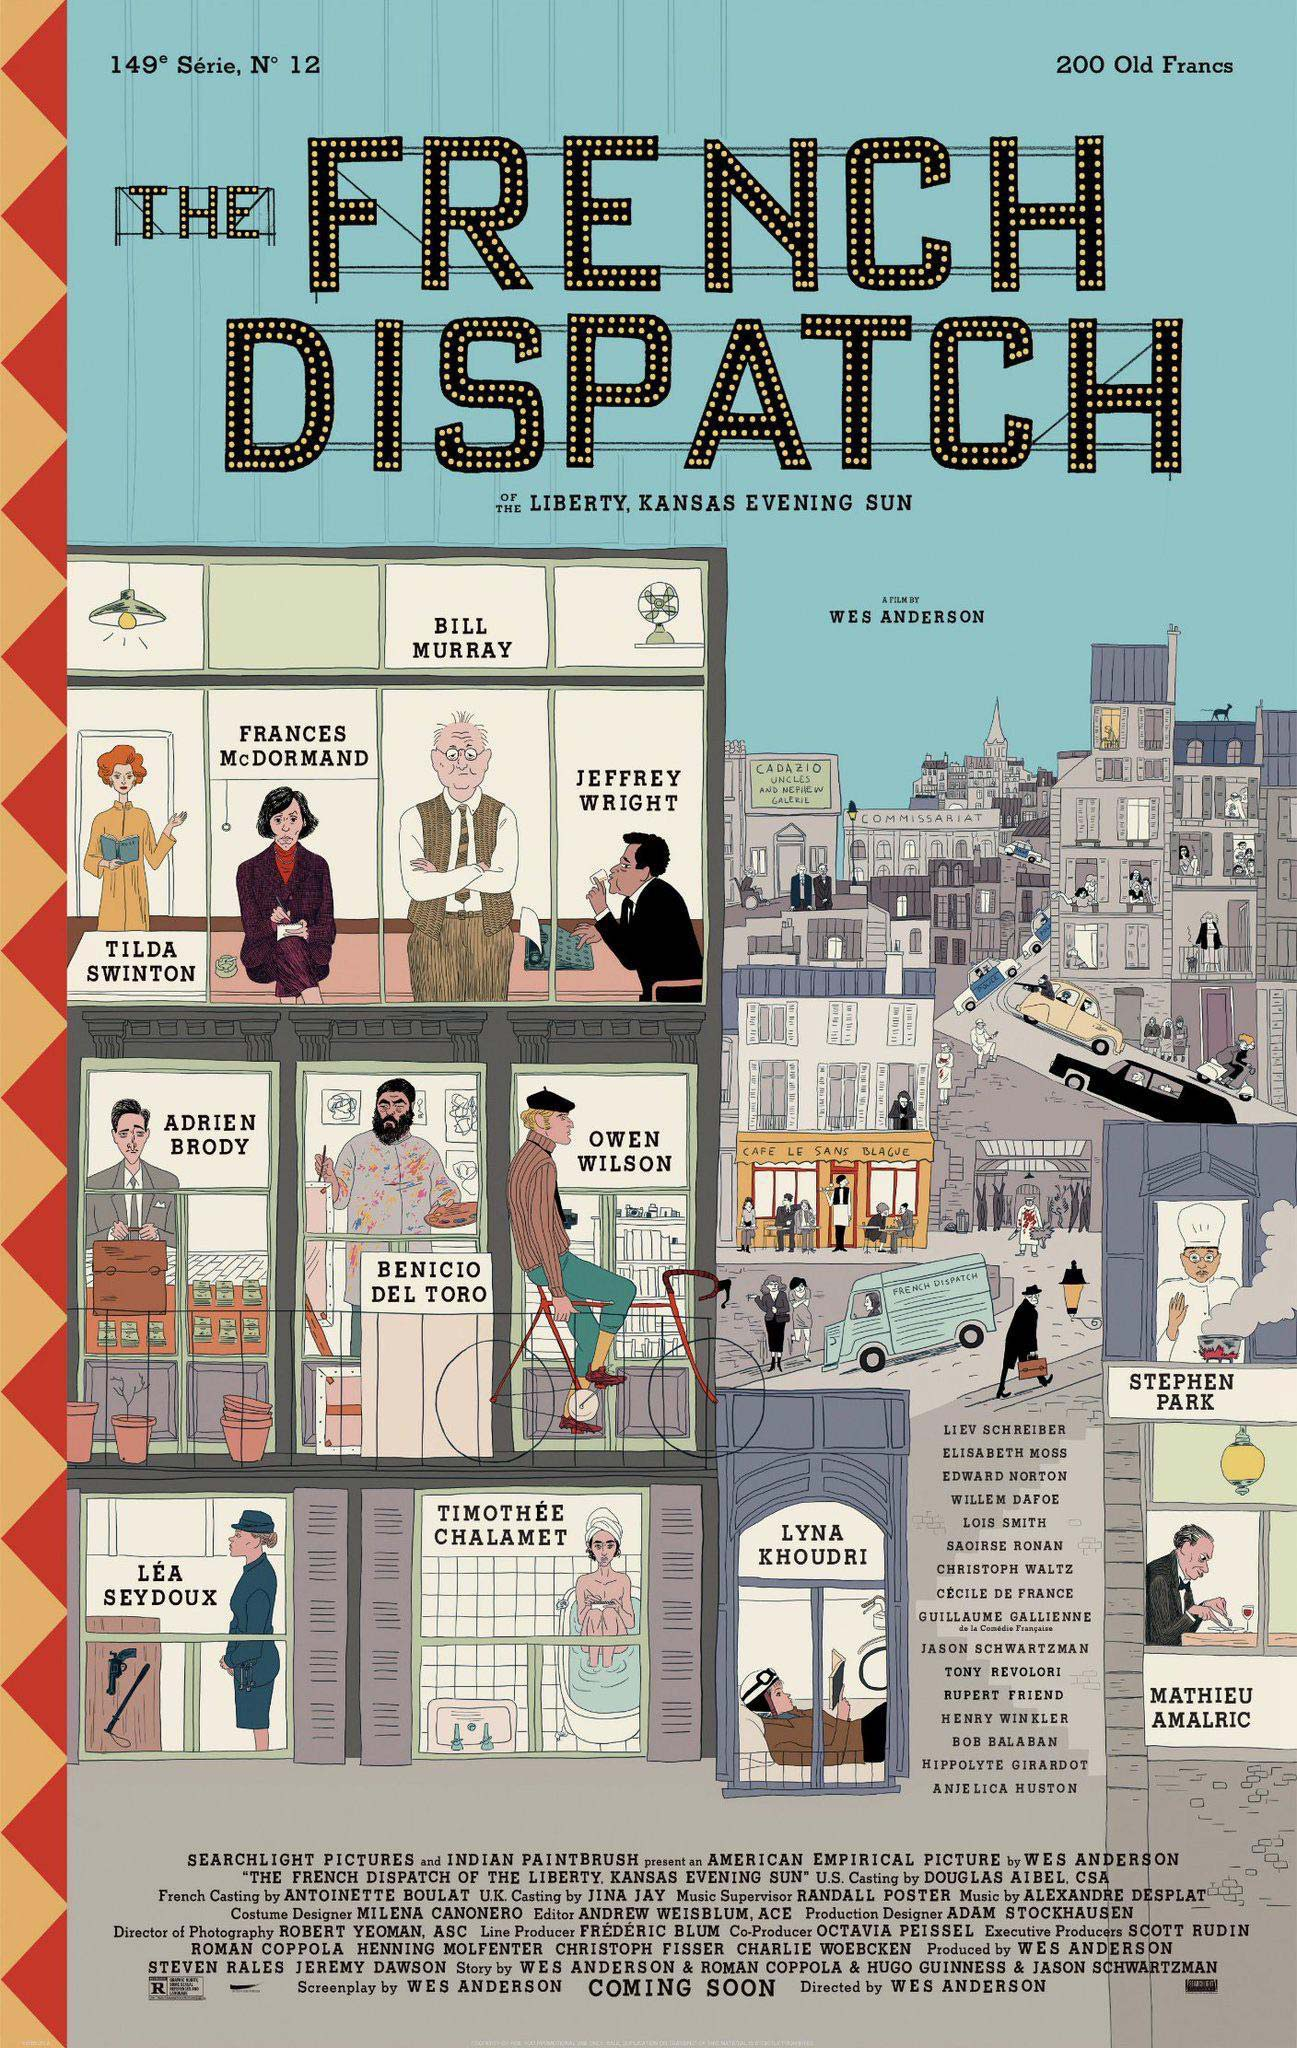 Wes Anderson - The French Dispatch